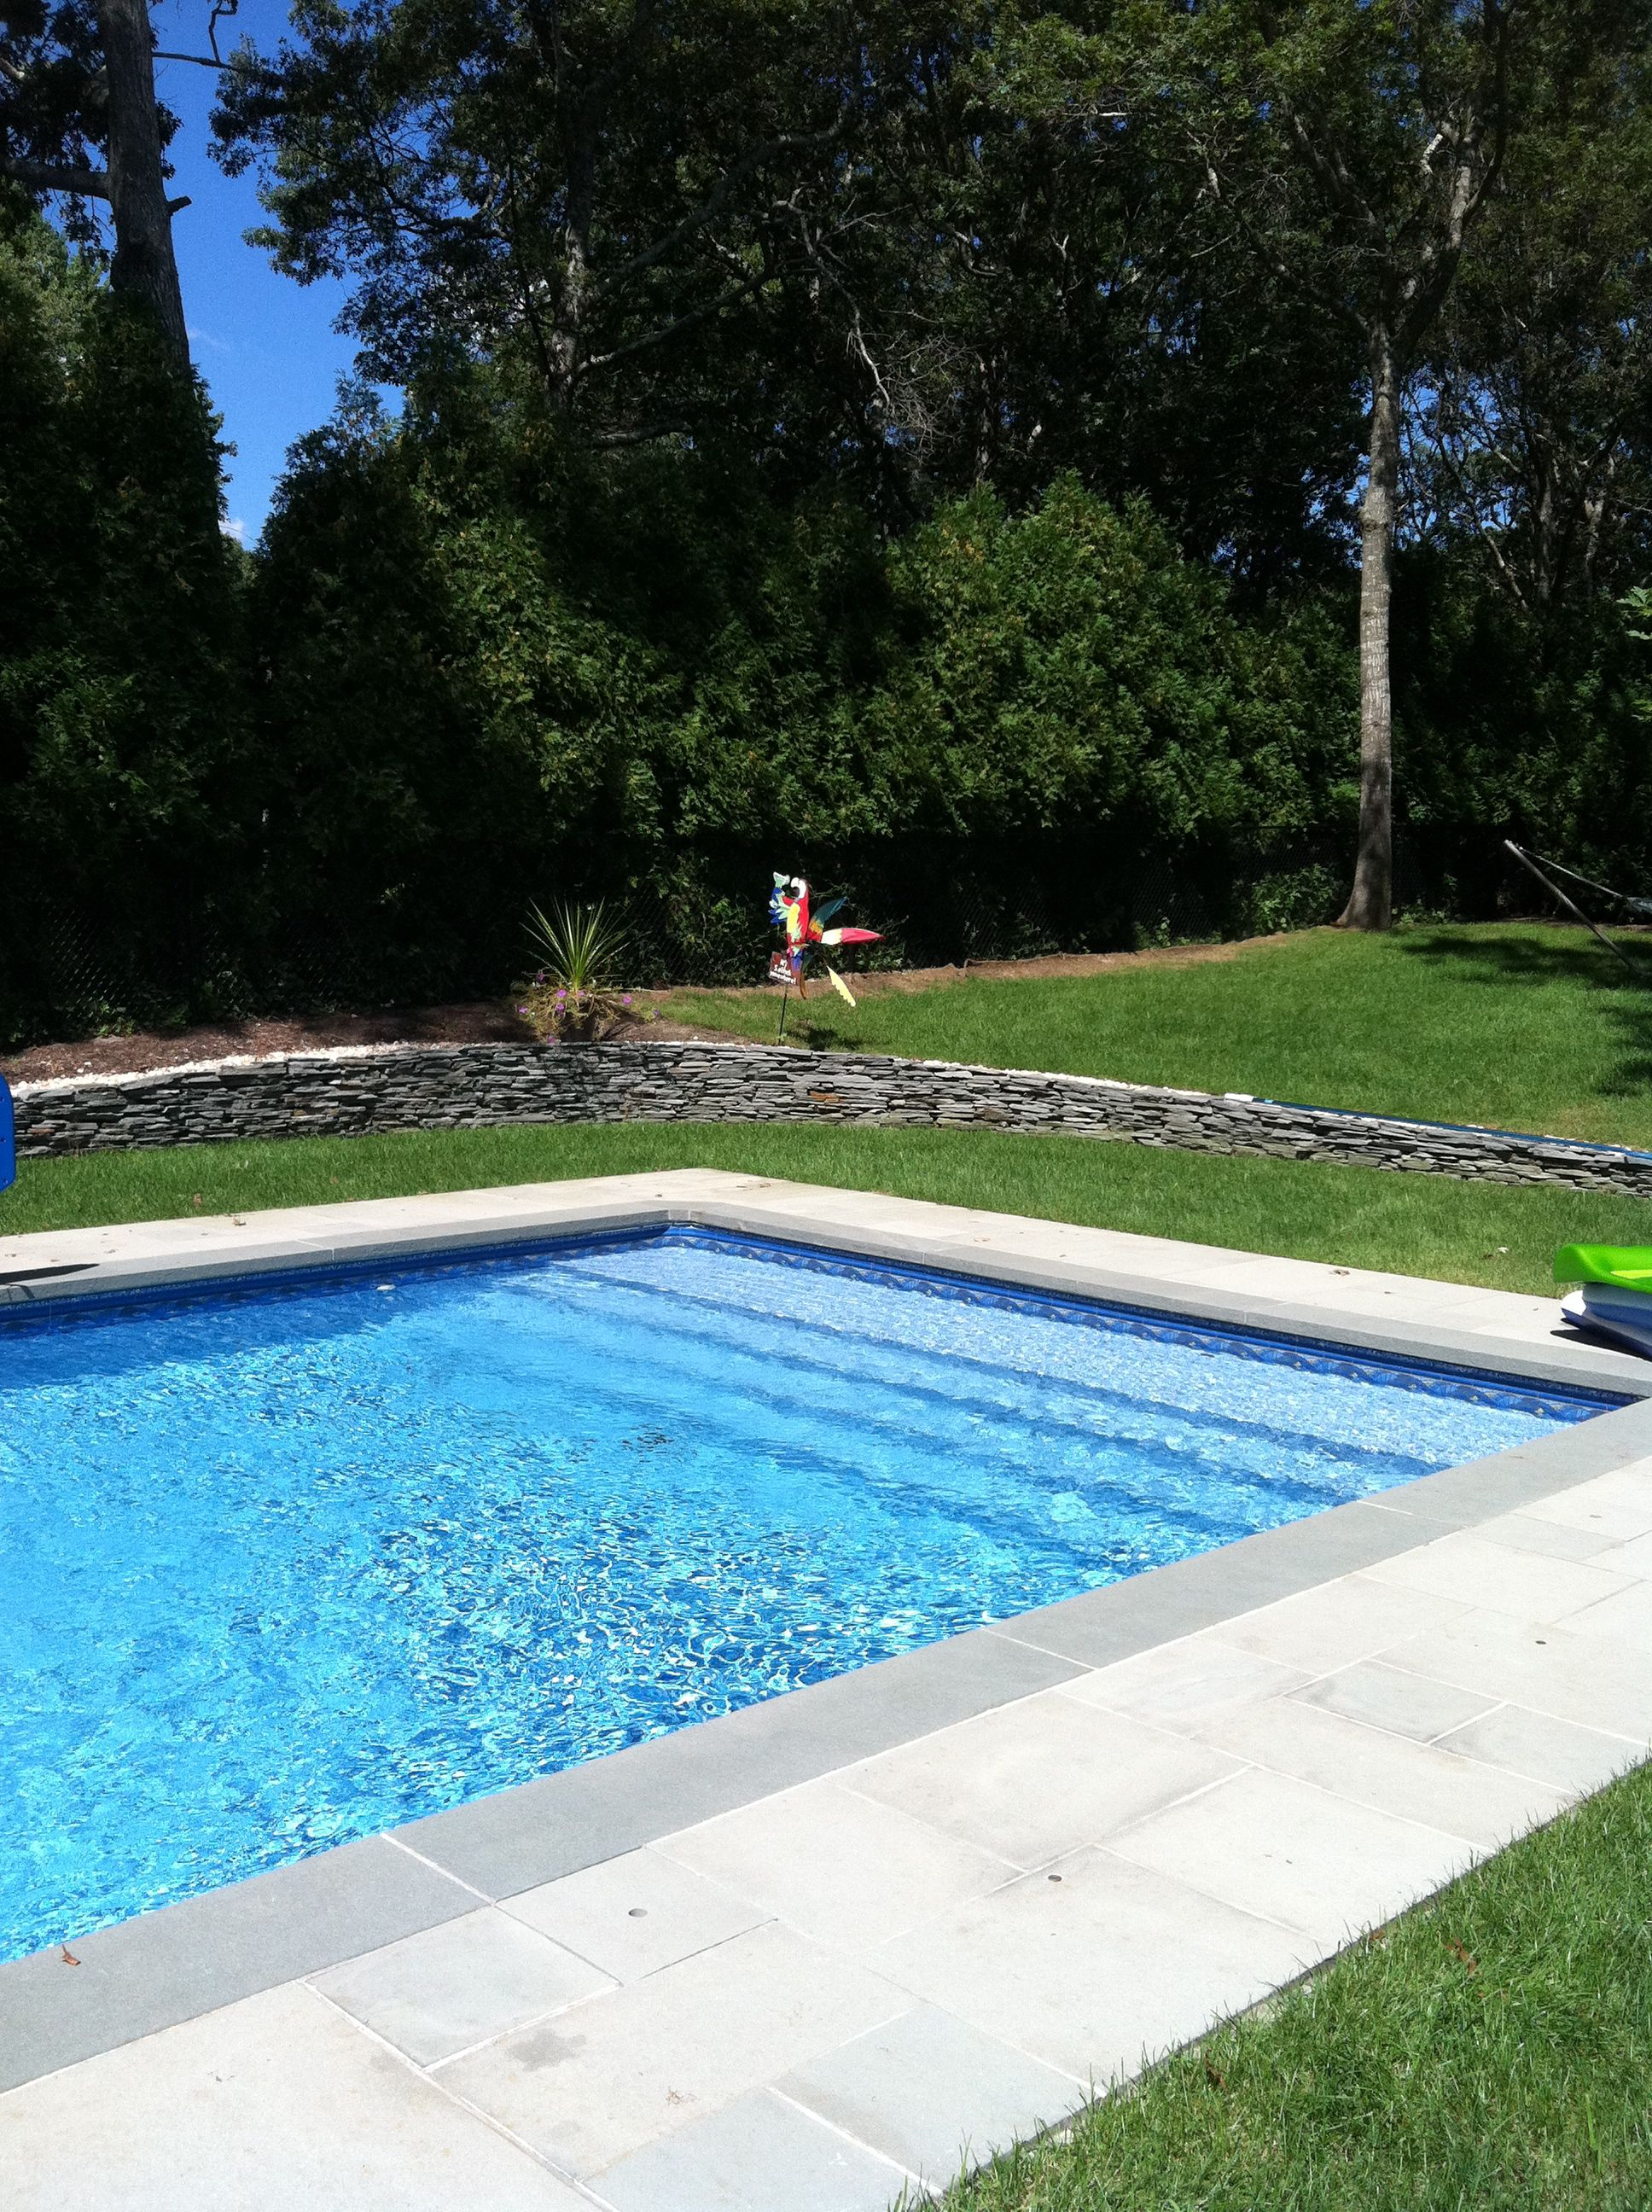 Vinyl Lined Swimming Pool Installation With Concrete Walls Pools Pool Decks Swimming Pools